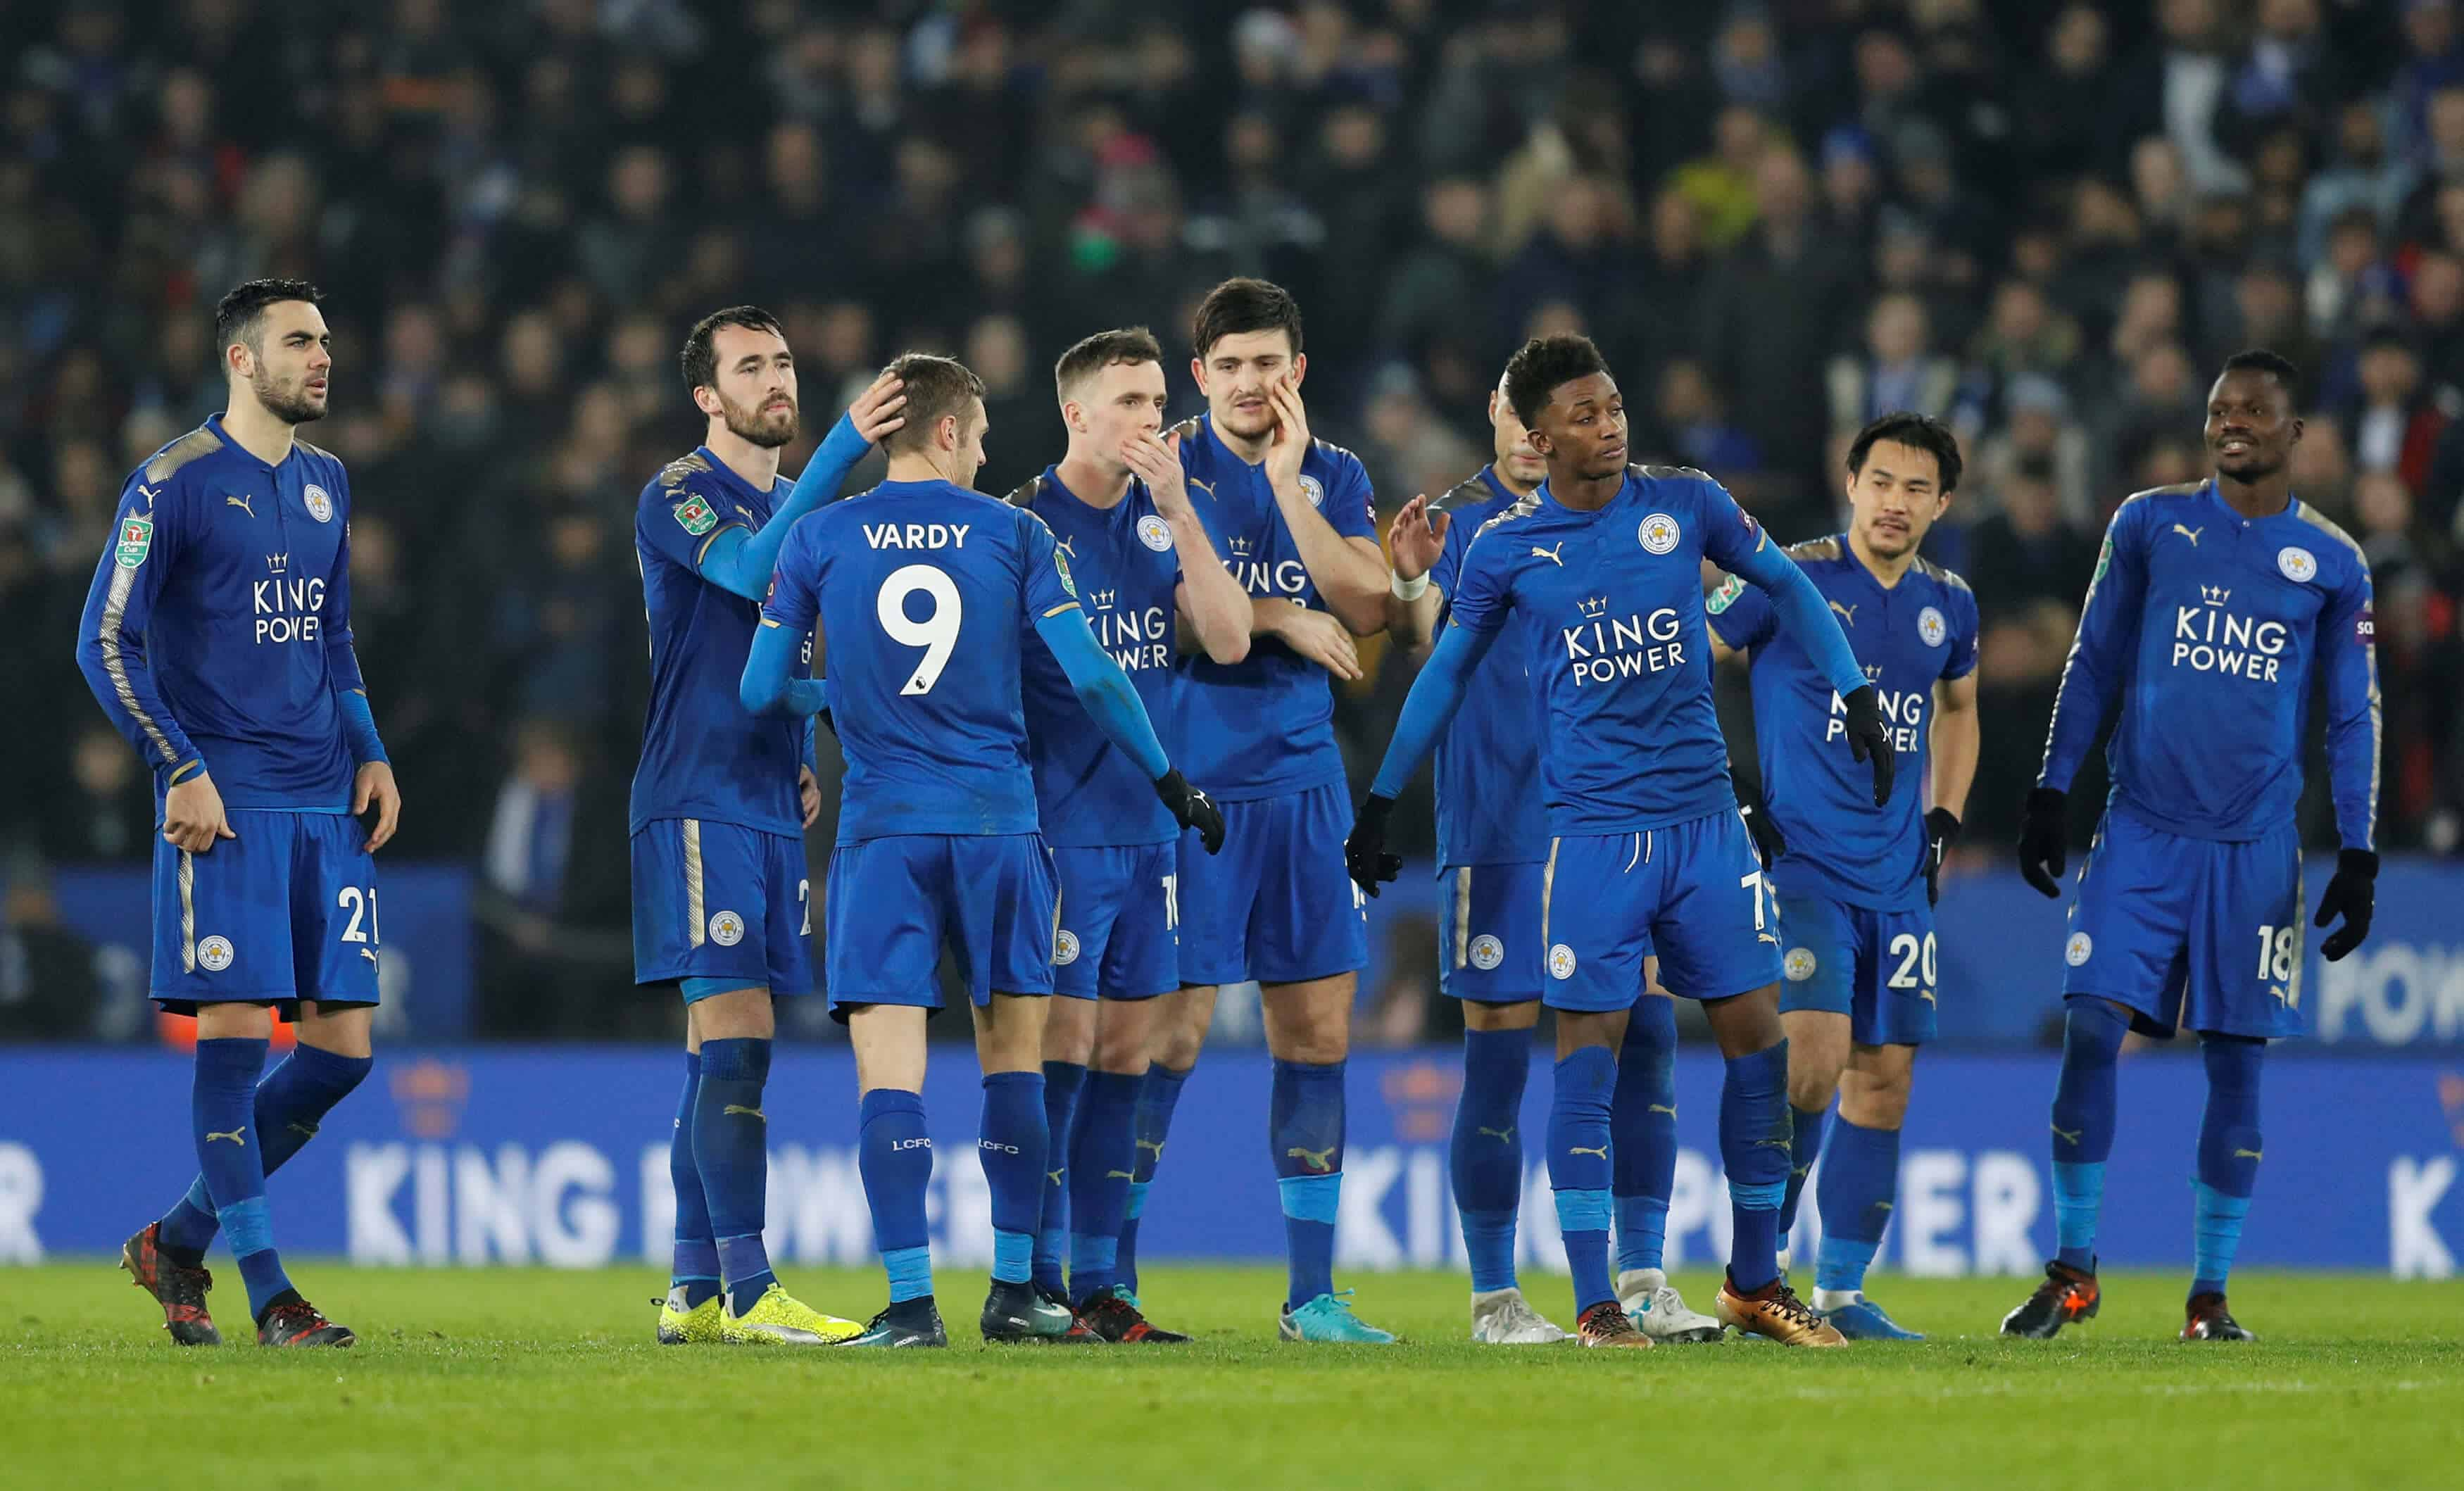 LEICESTER CITY football team 2019 - Copy